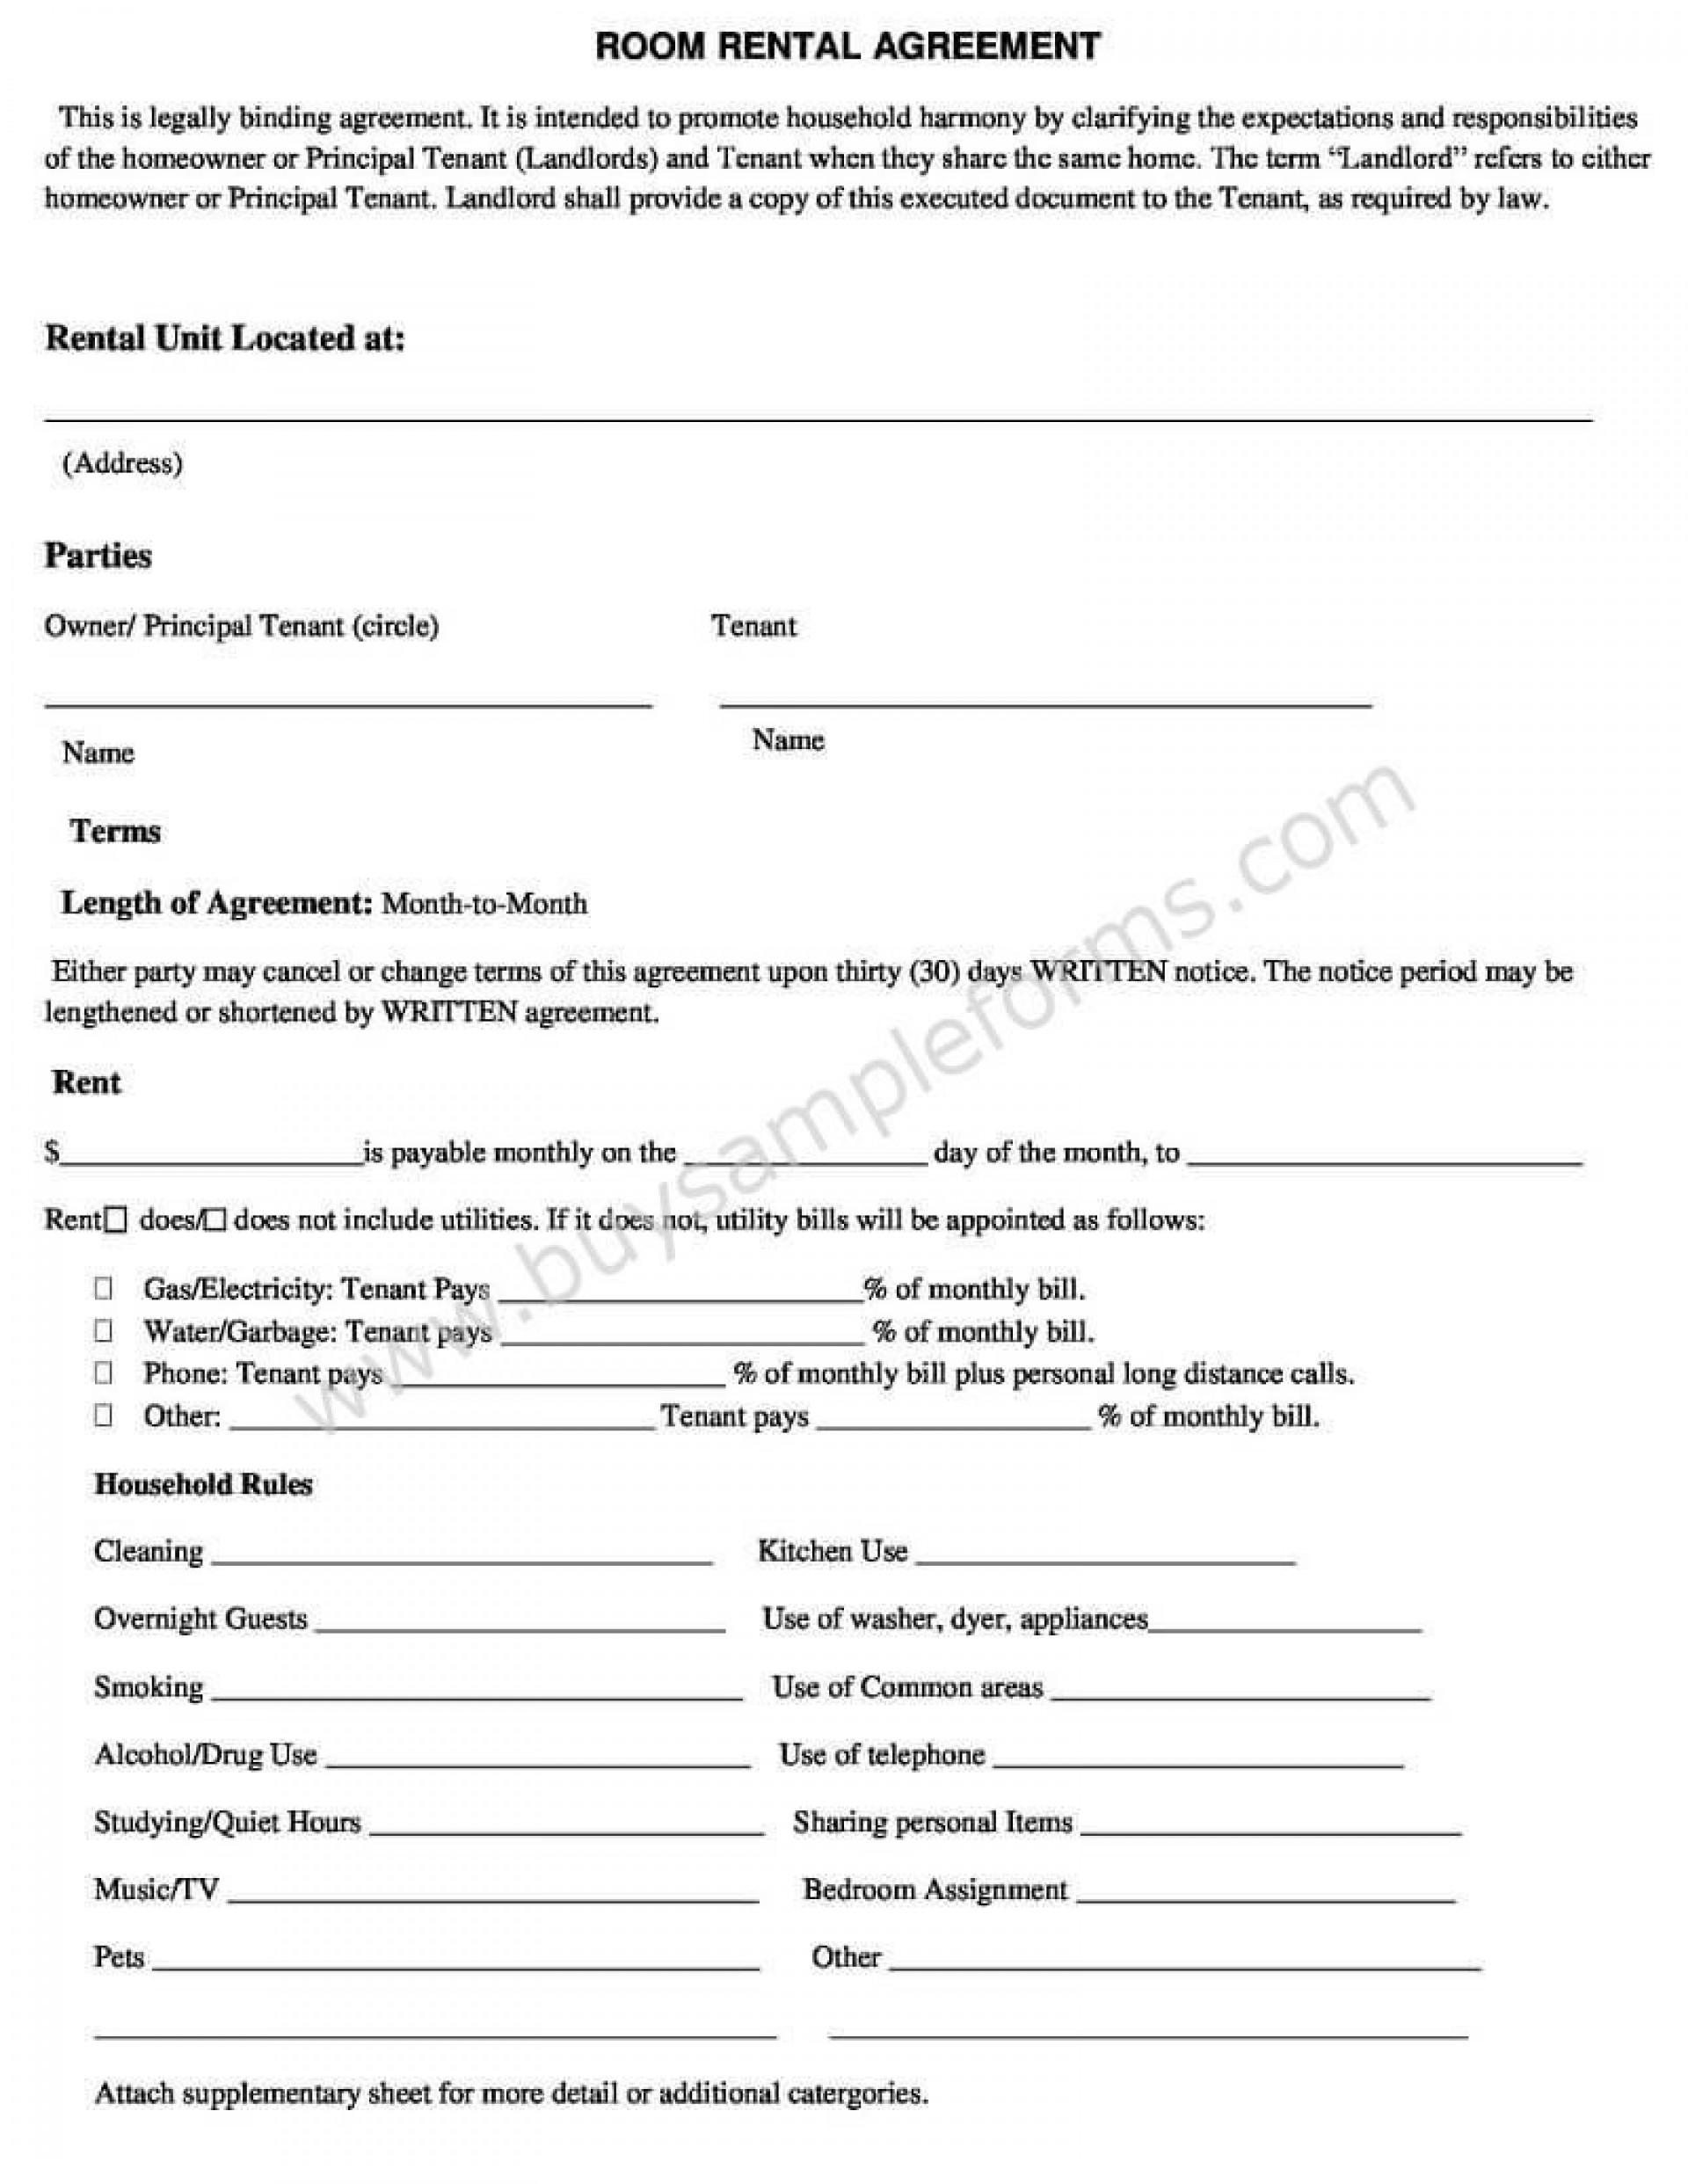 006 Impressive Sample House Rental Agreement Template Image  Contract Lease1920